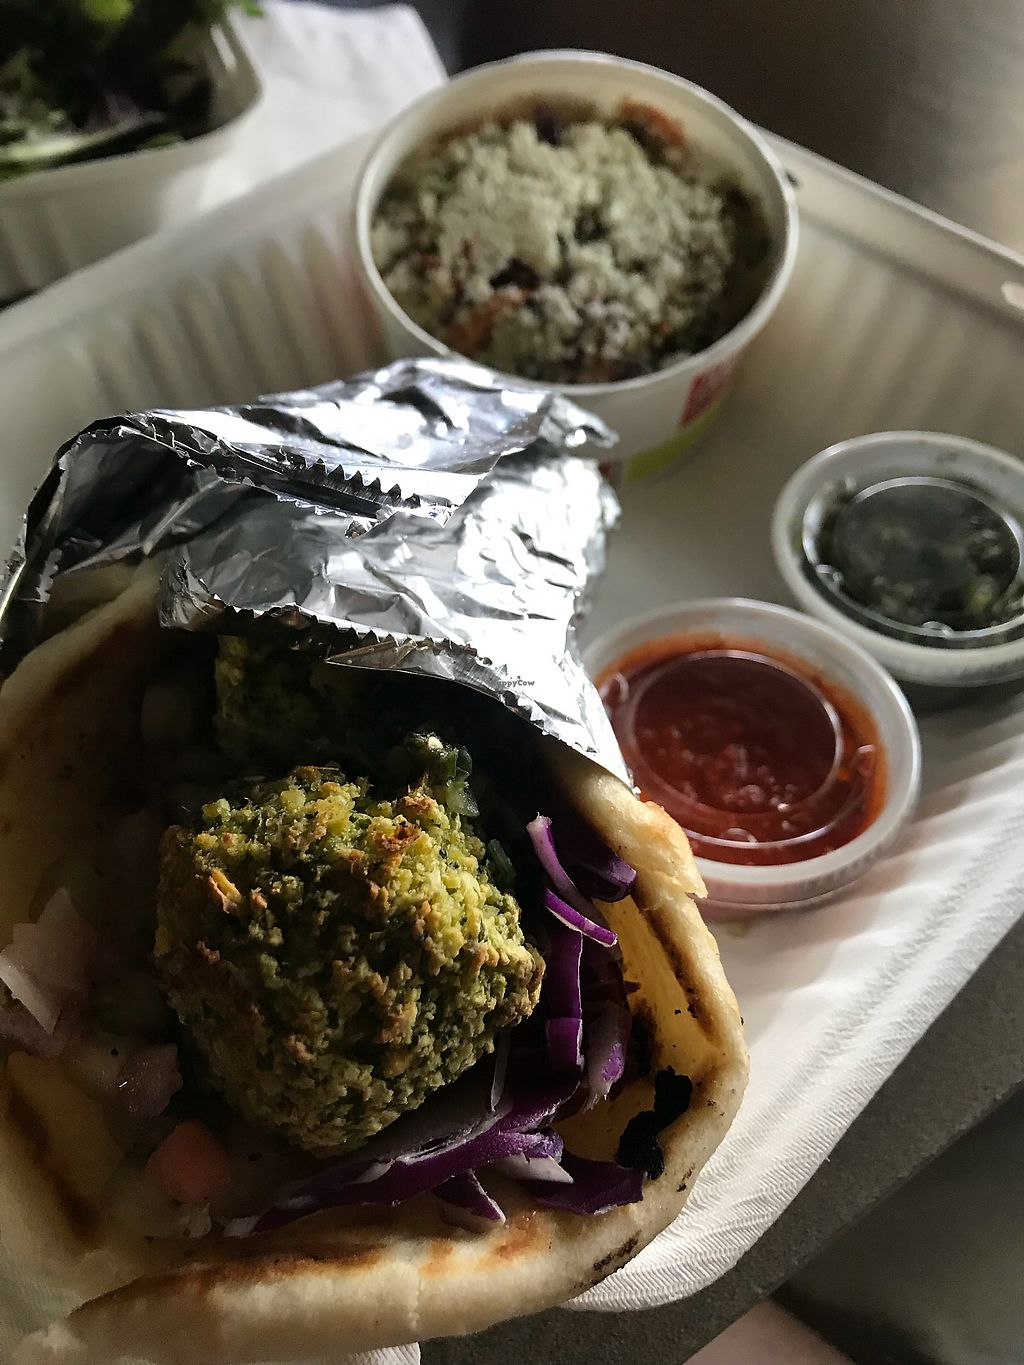 """Photo of Zoe's Kitchen  by <a href=""""/members/profile/marcgelbke"""">marcgelbke</a> <br/>Baked Falafel Pita - vegan option <br/> April 10, 2018  - <a href='/contact/abuse/image/117079/383278'>Report</a>"""